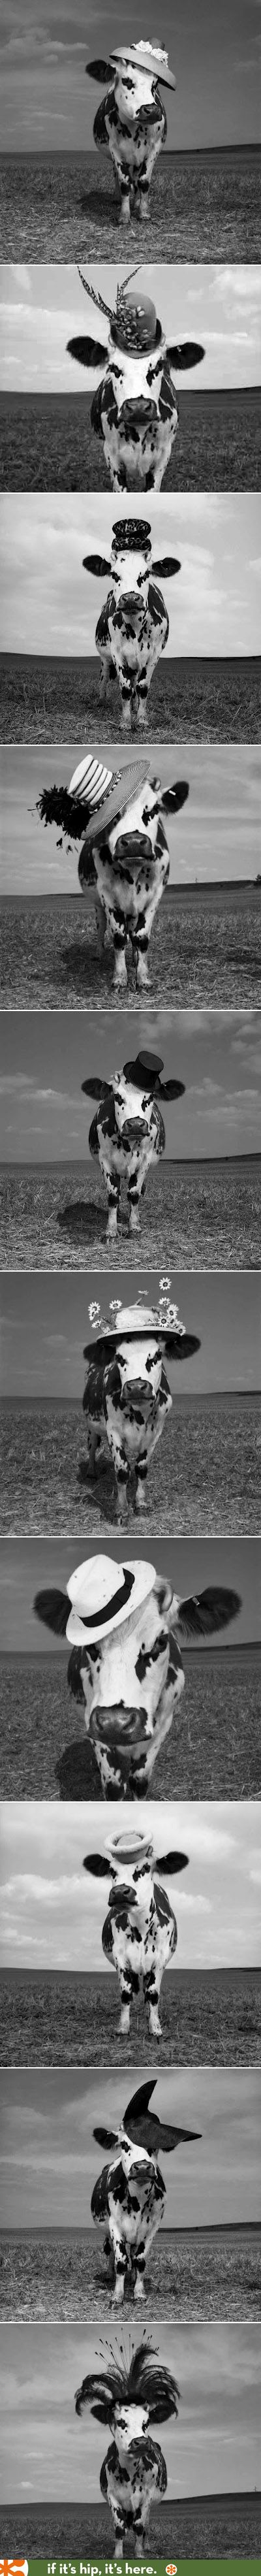 Hilarious images of Cows in Hats. (more at the link) Thanks for the Pin Uni Unicorn :-). H